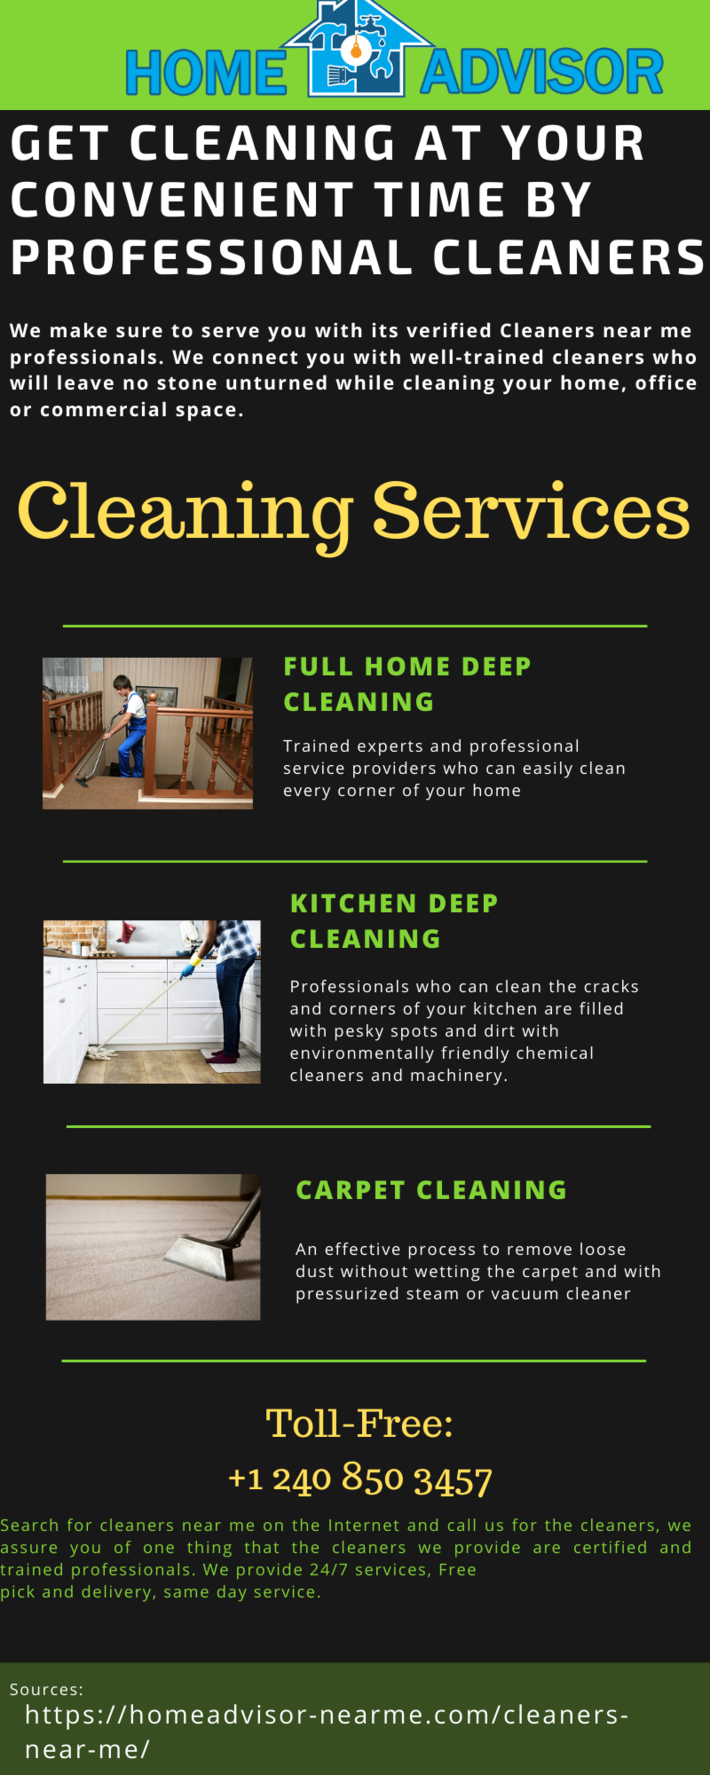 Commercial & Office Cleaning Services in USA